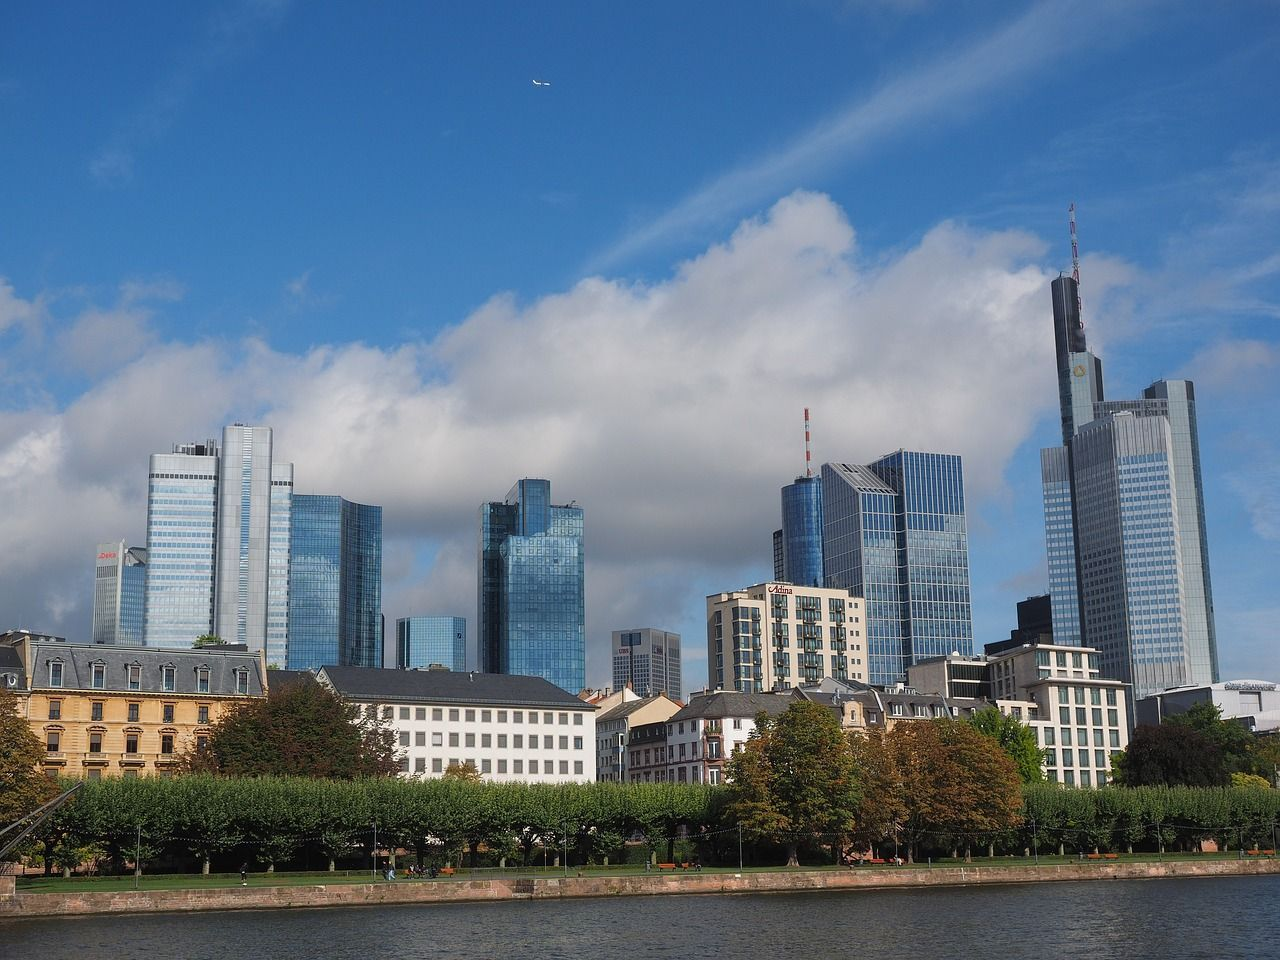 Hochaeuser Frankfurt Am Main Germany Skyscraper